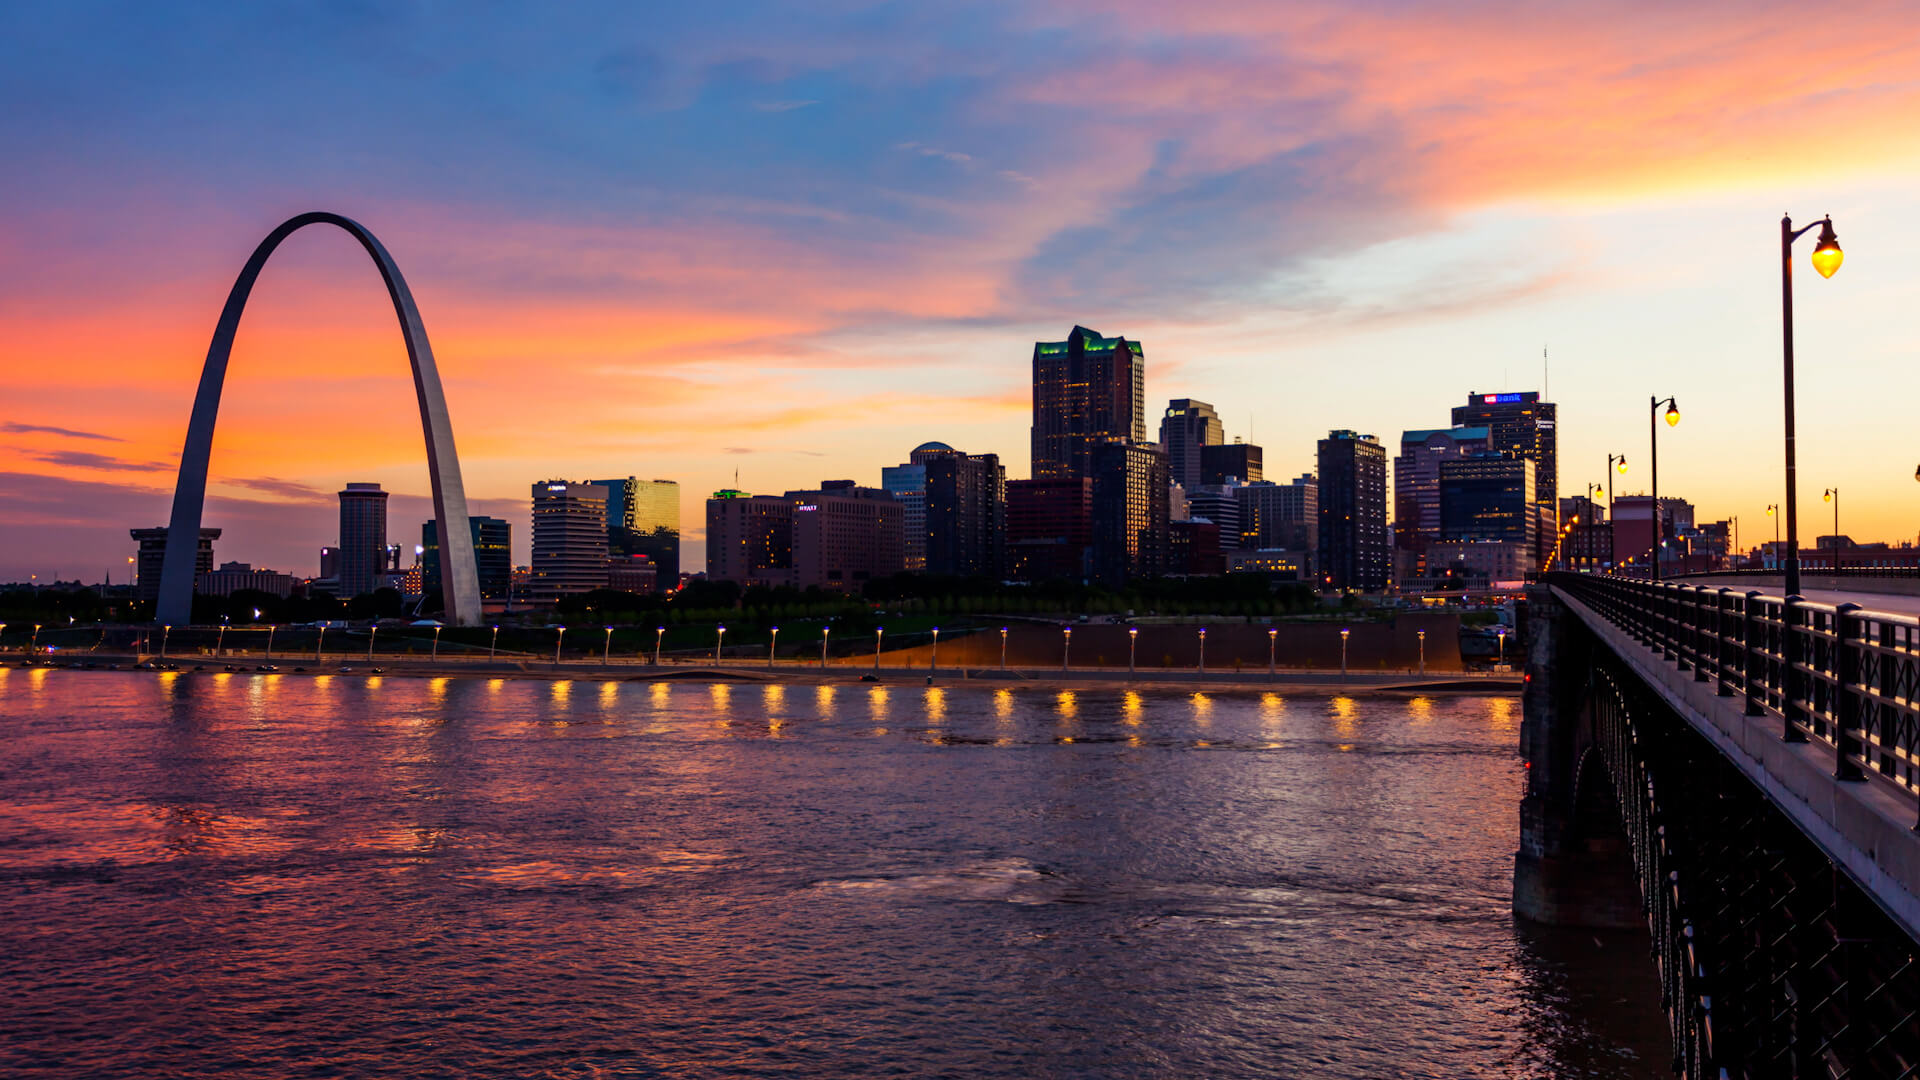 St Louis skyline over the river at sunset